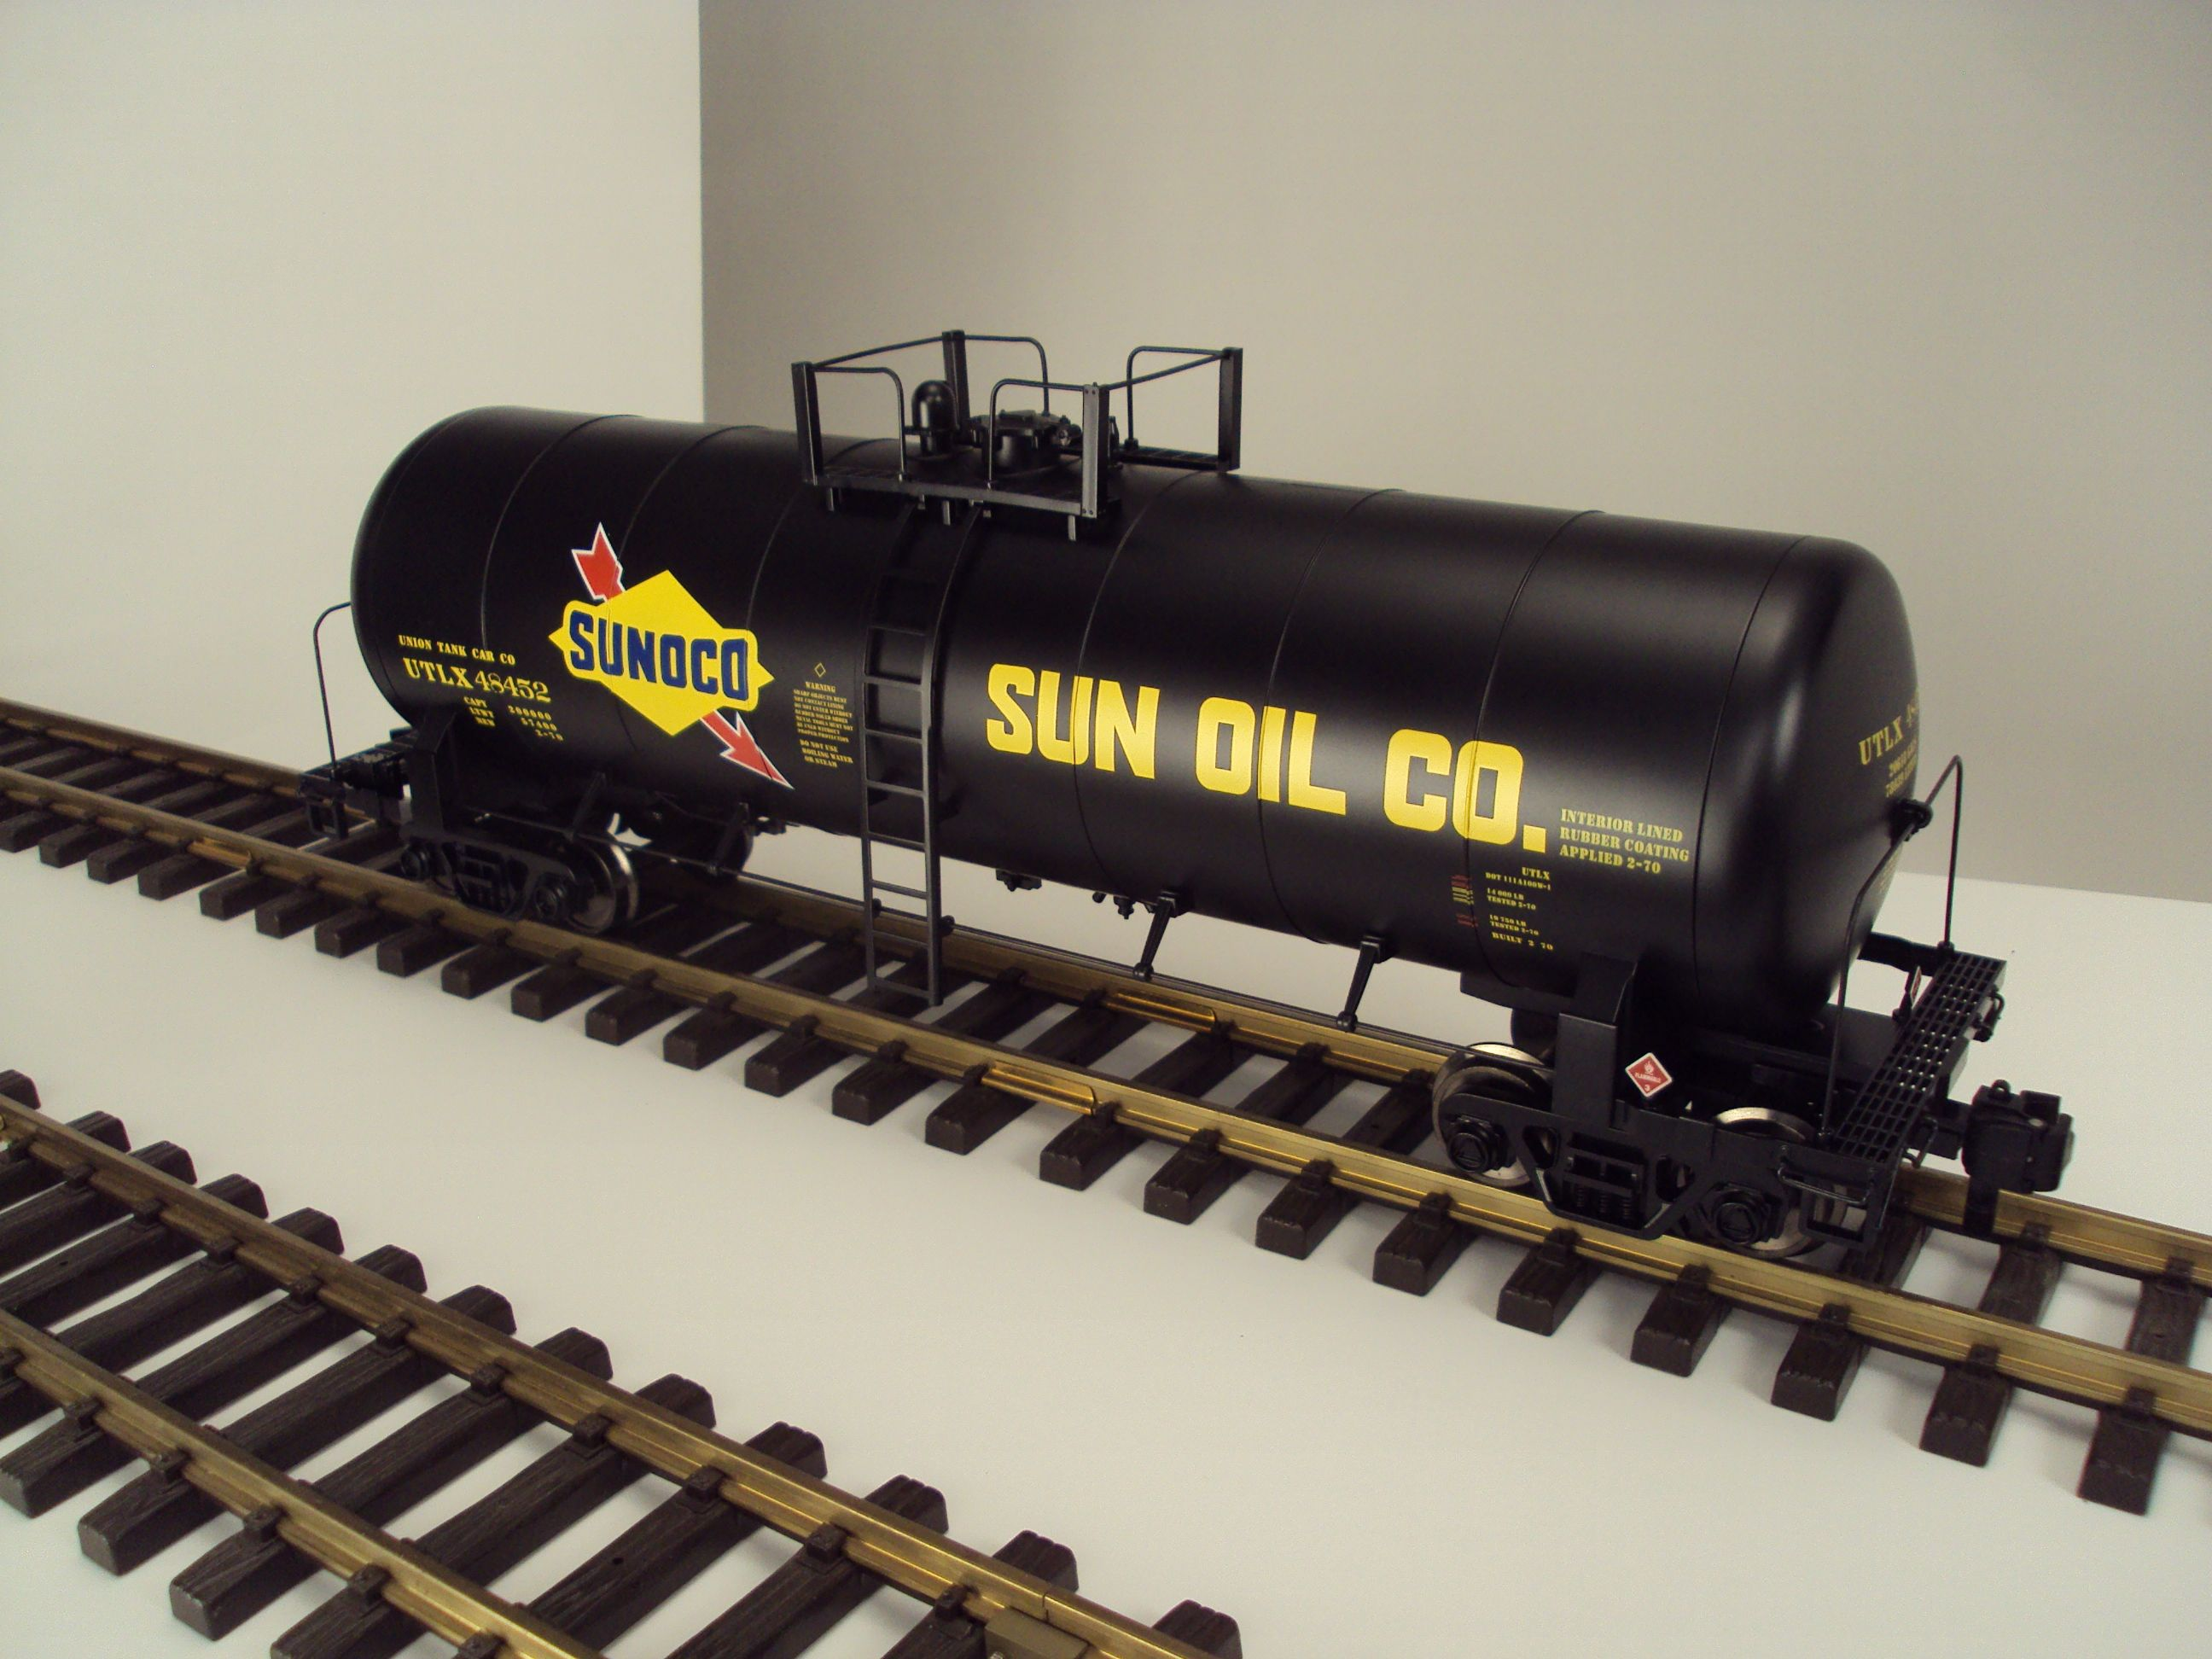 MTH RailKing One Gauge (G Gauge) Sunoco Unibody Tank Car